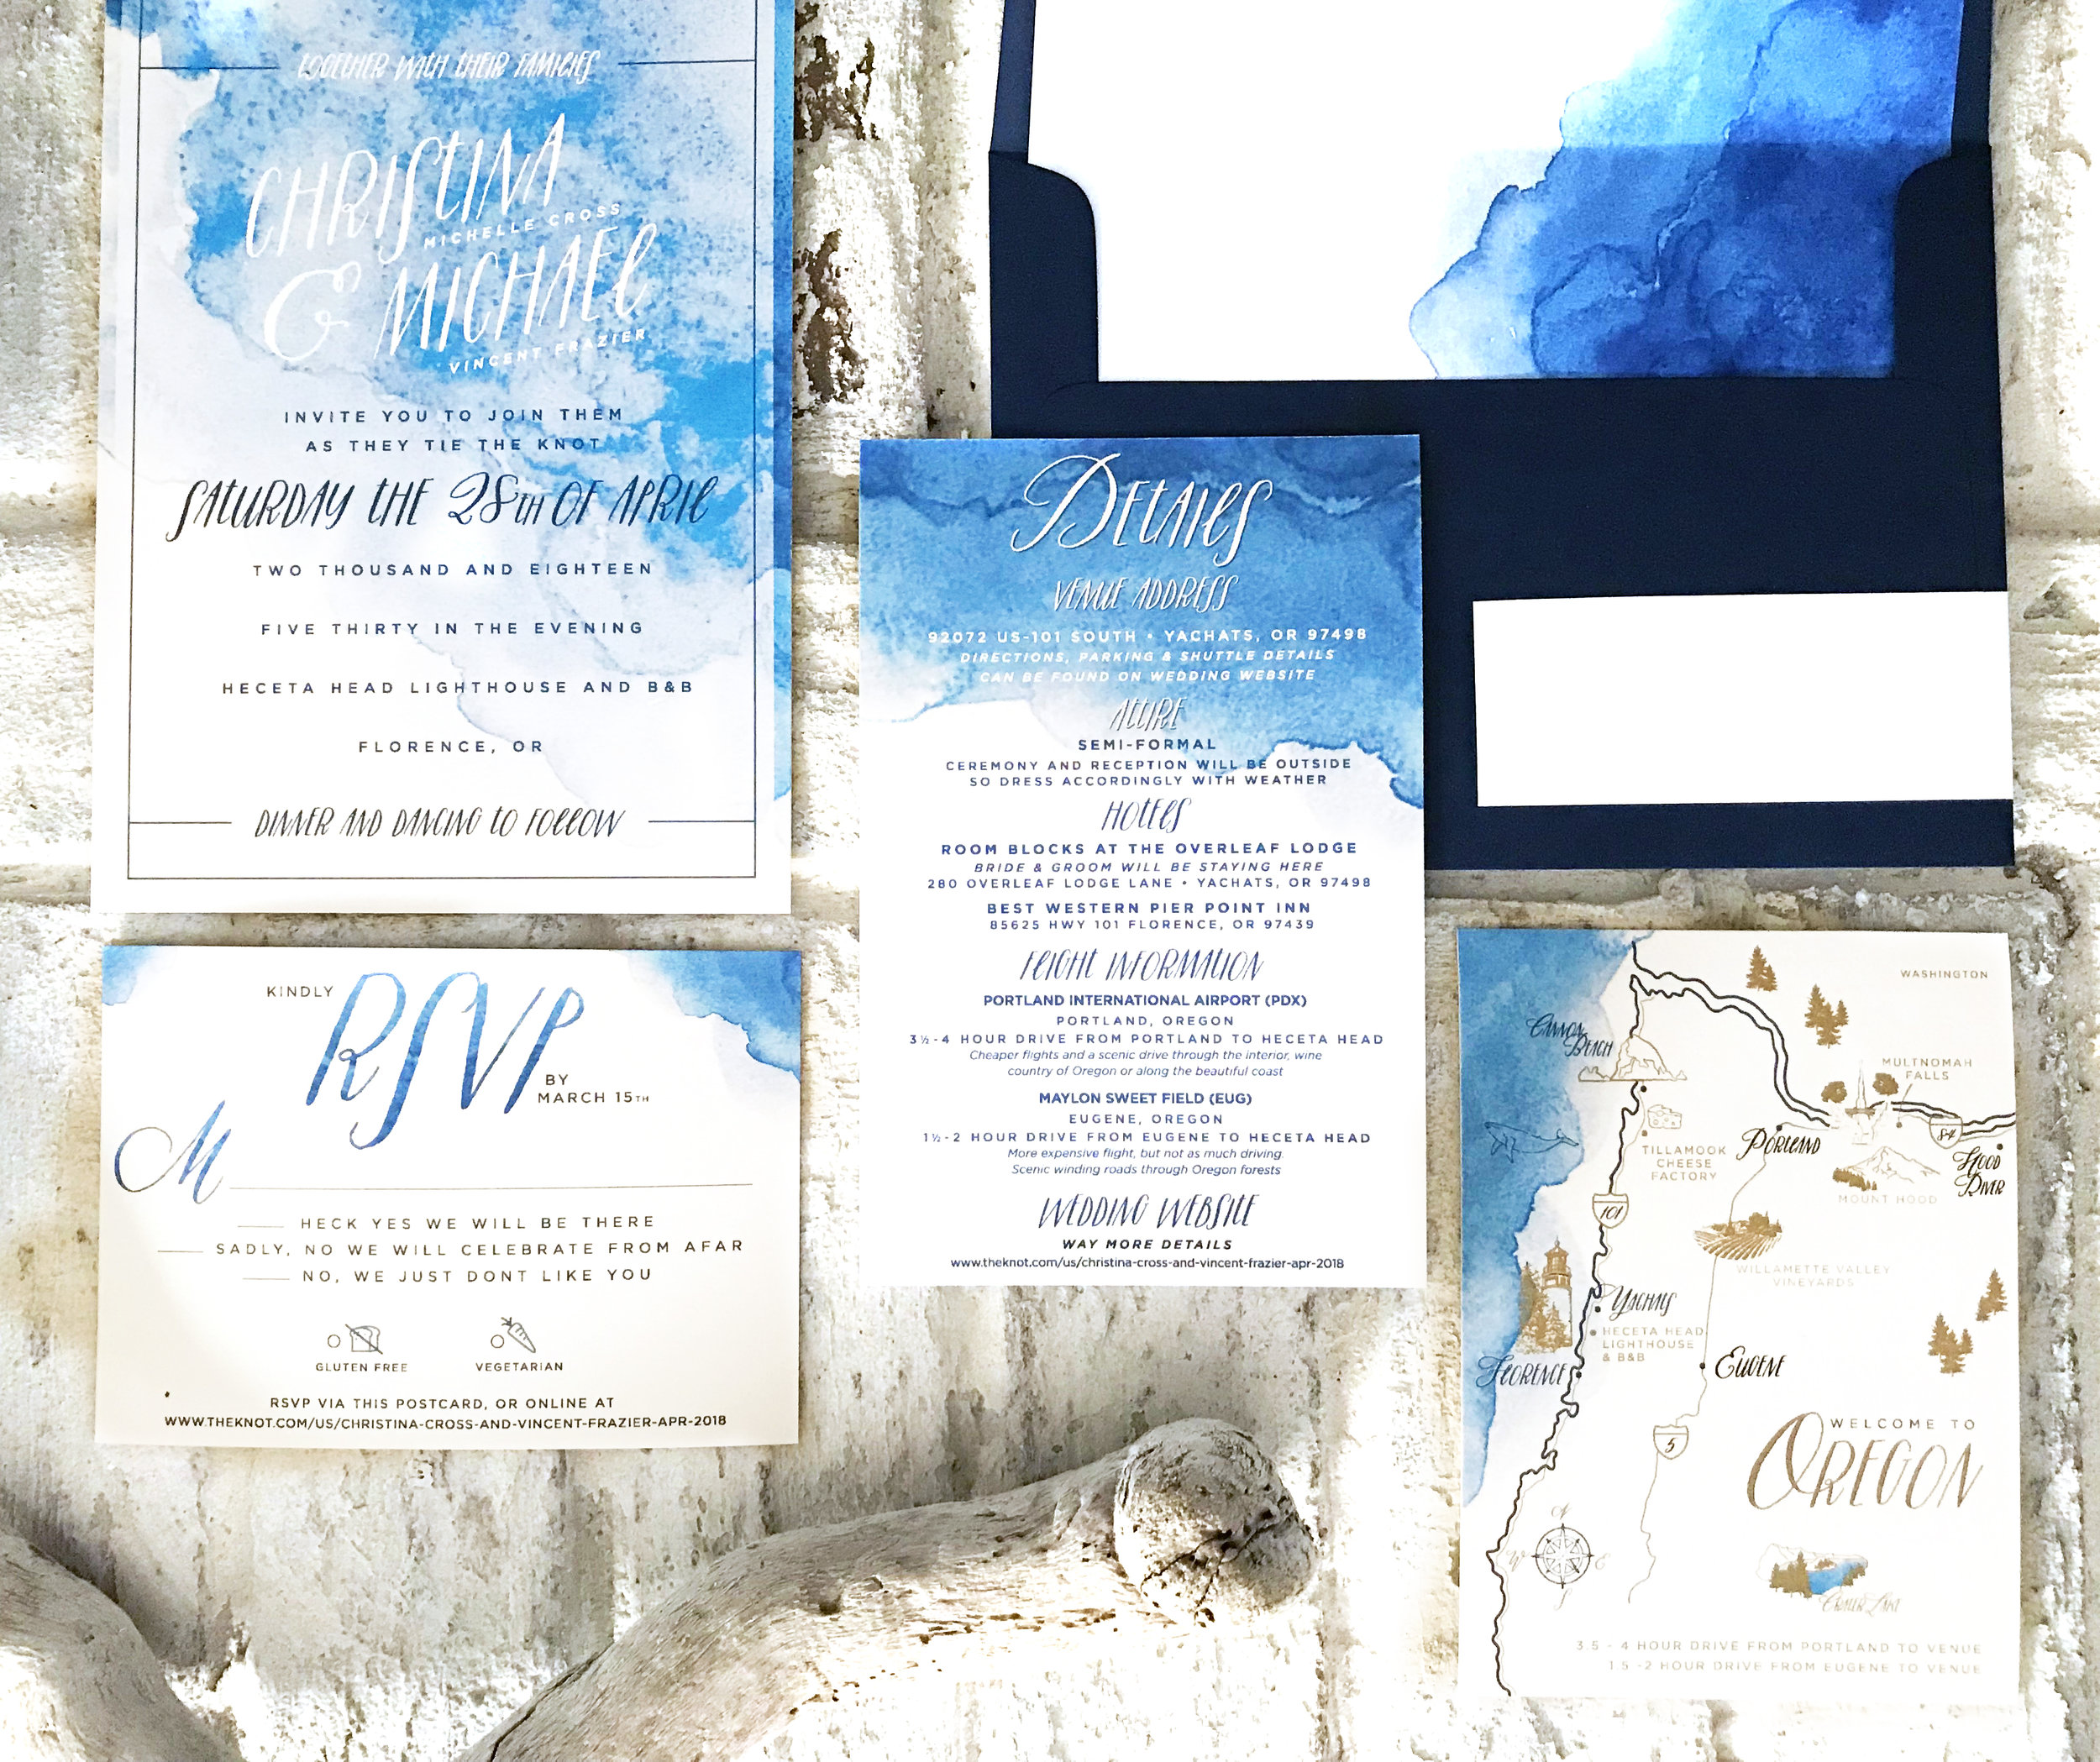 Custom Oregon coast wedding suite with illustrated map of Western Oregon including venue and amenities.